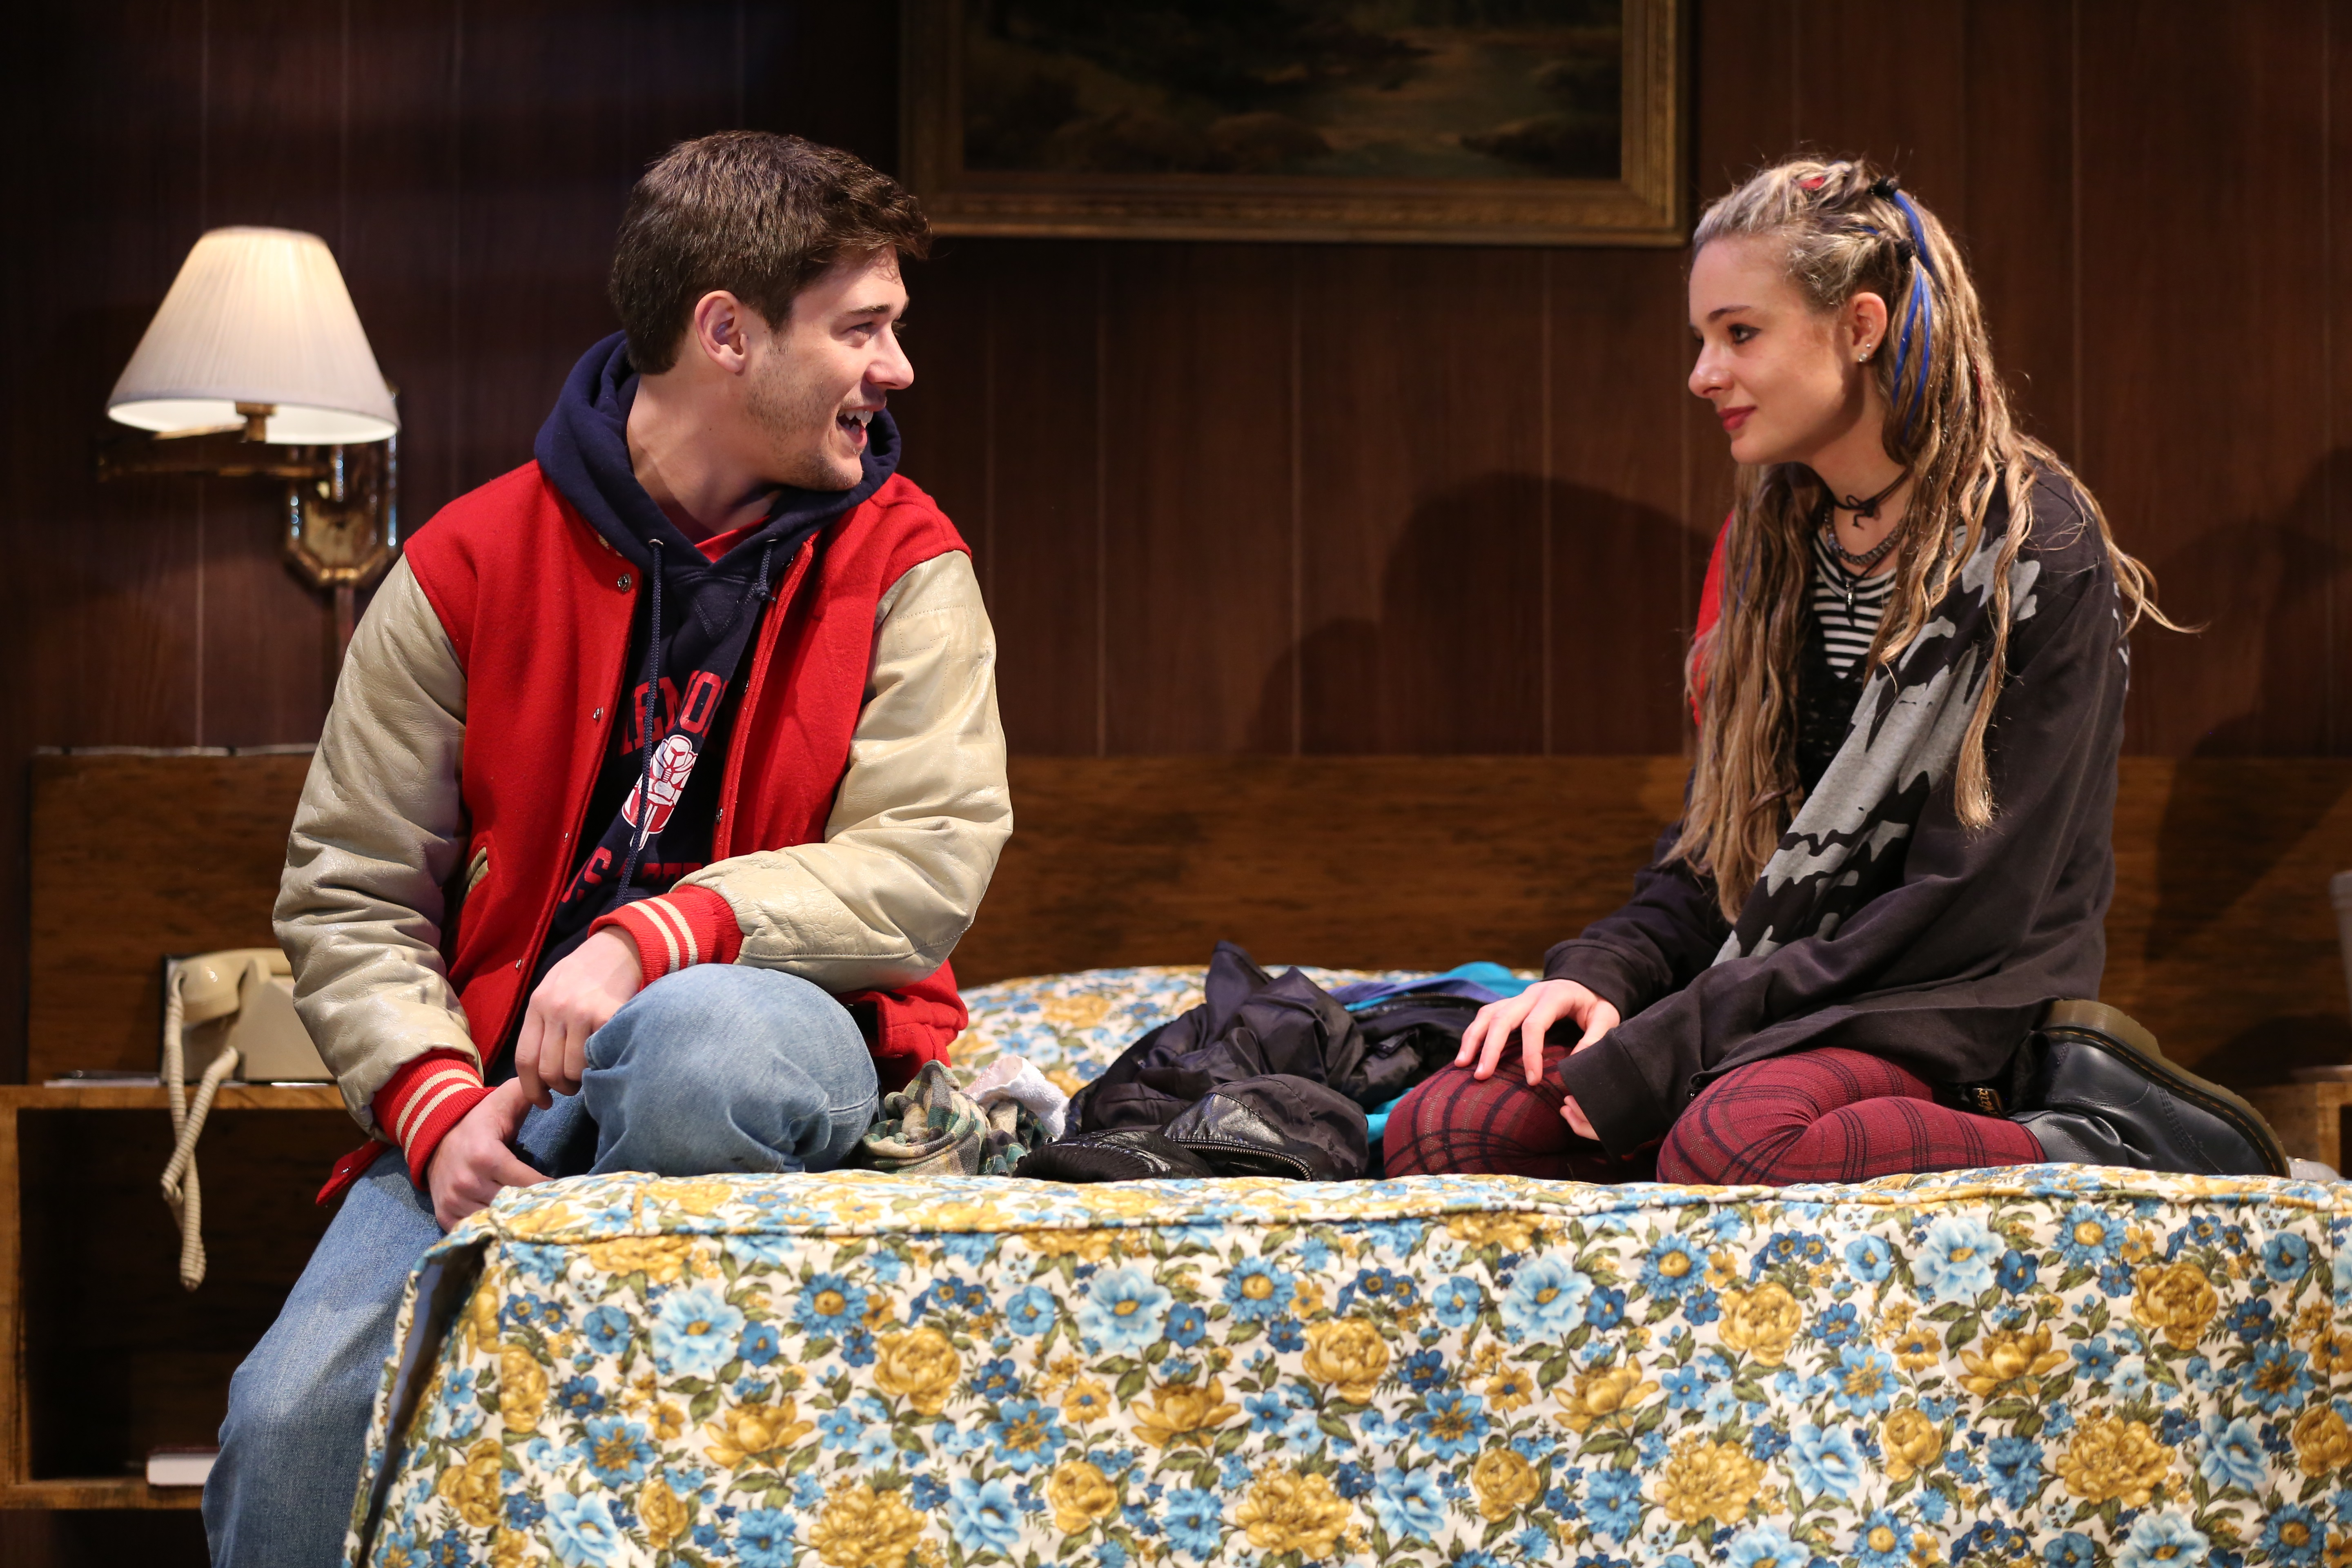 Josh Green (left)Lizzy DeClement (right) in Lost Girls. Photo by Joan Marcus.